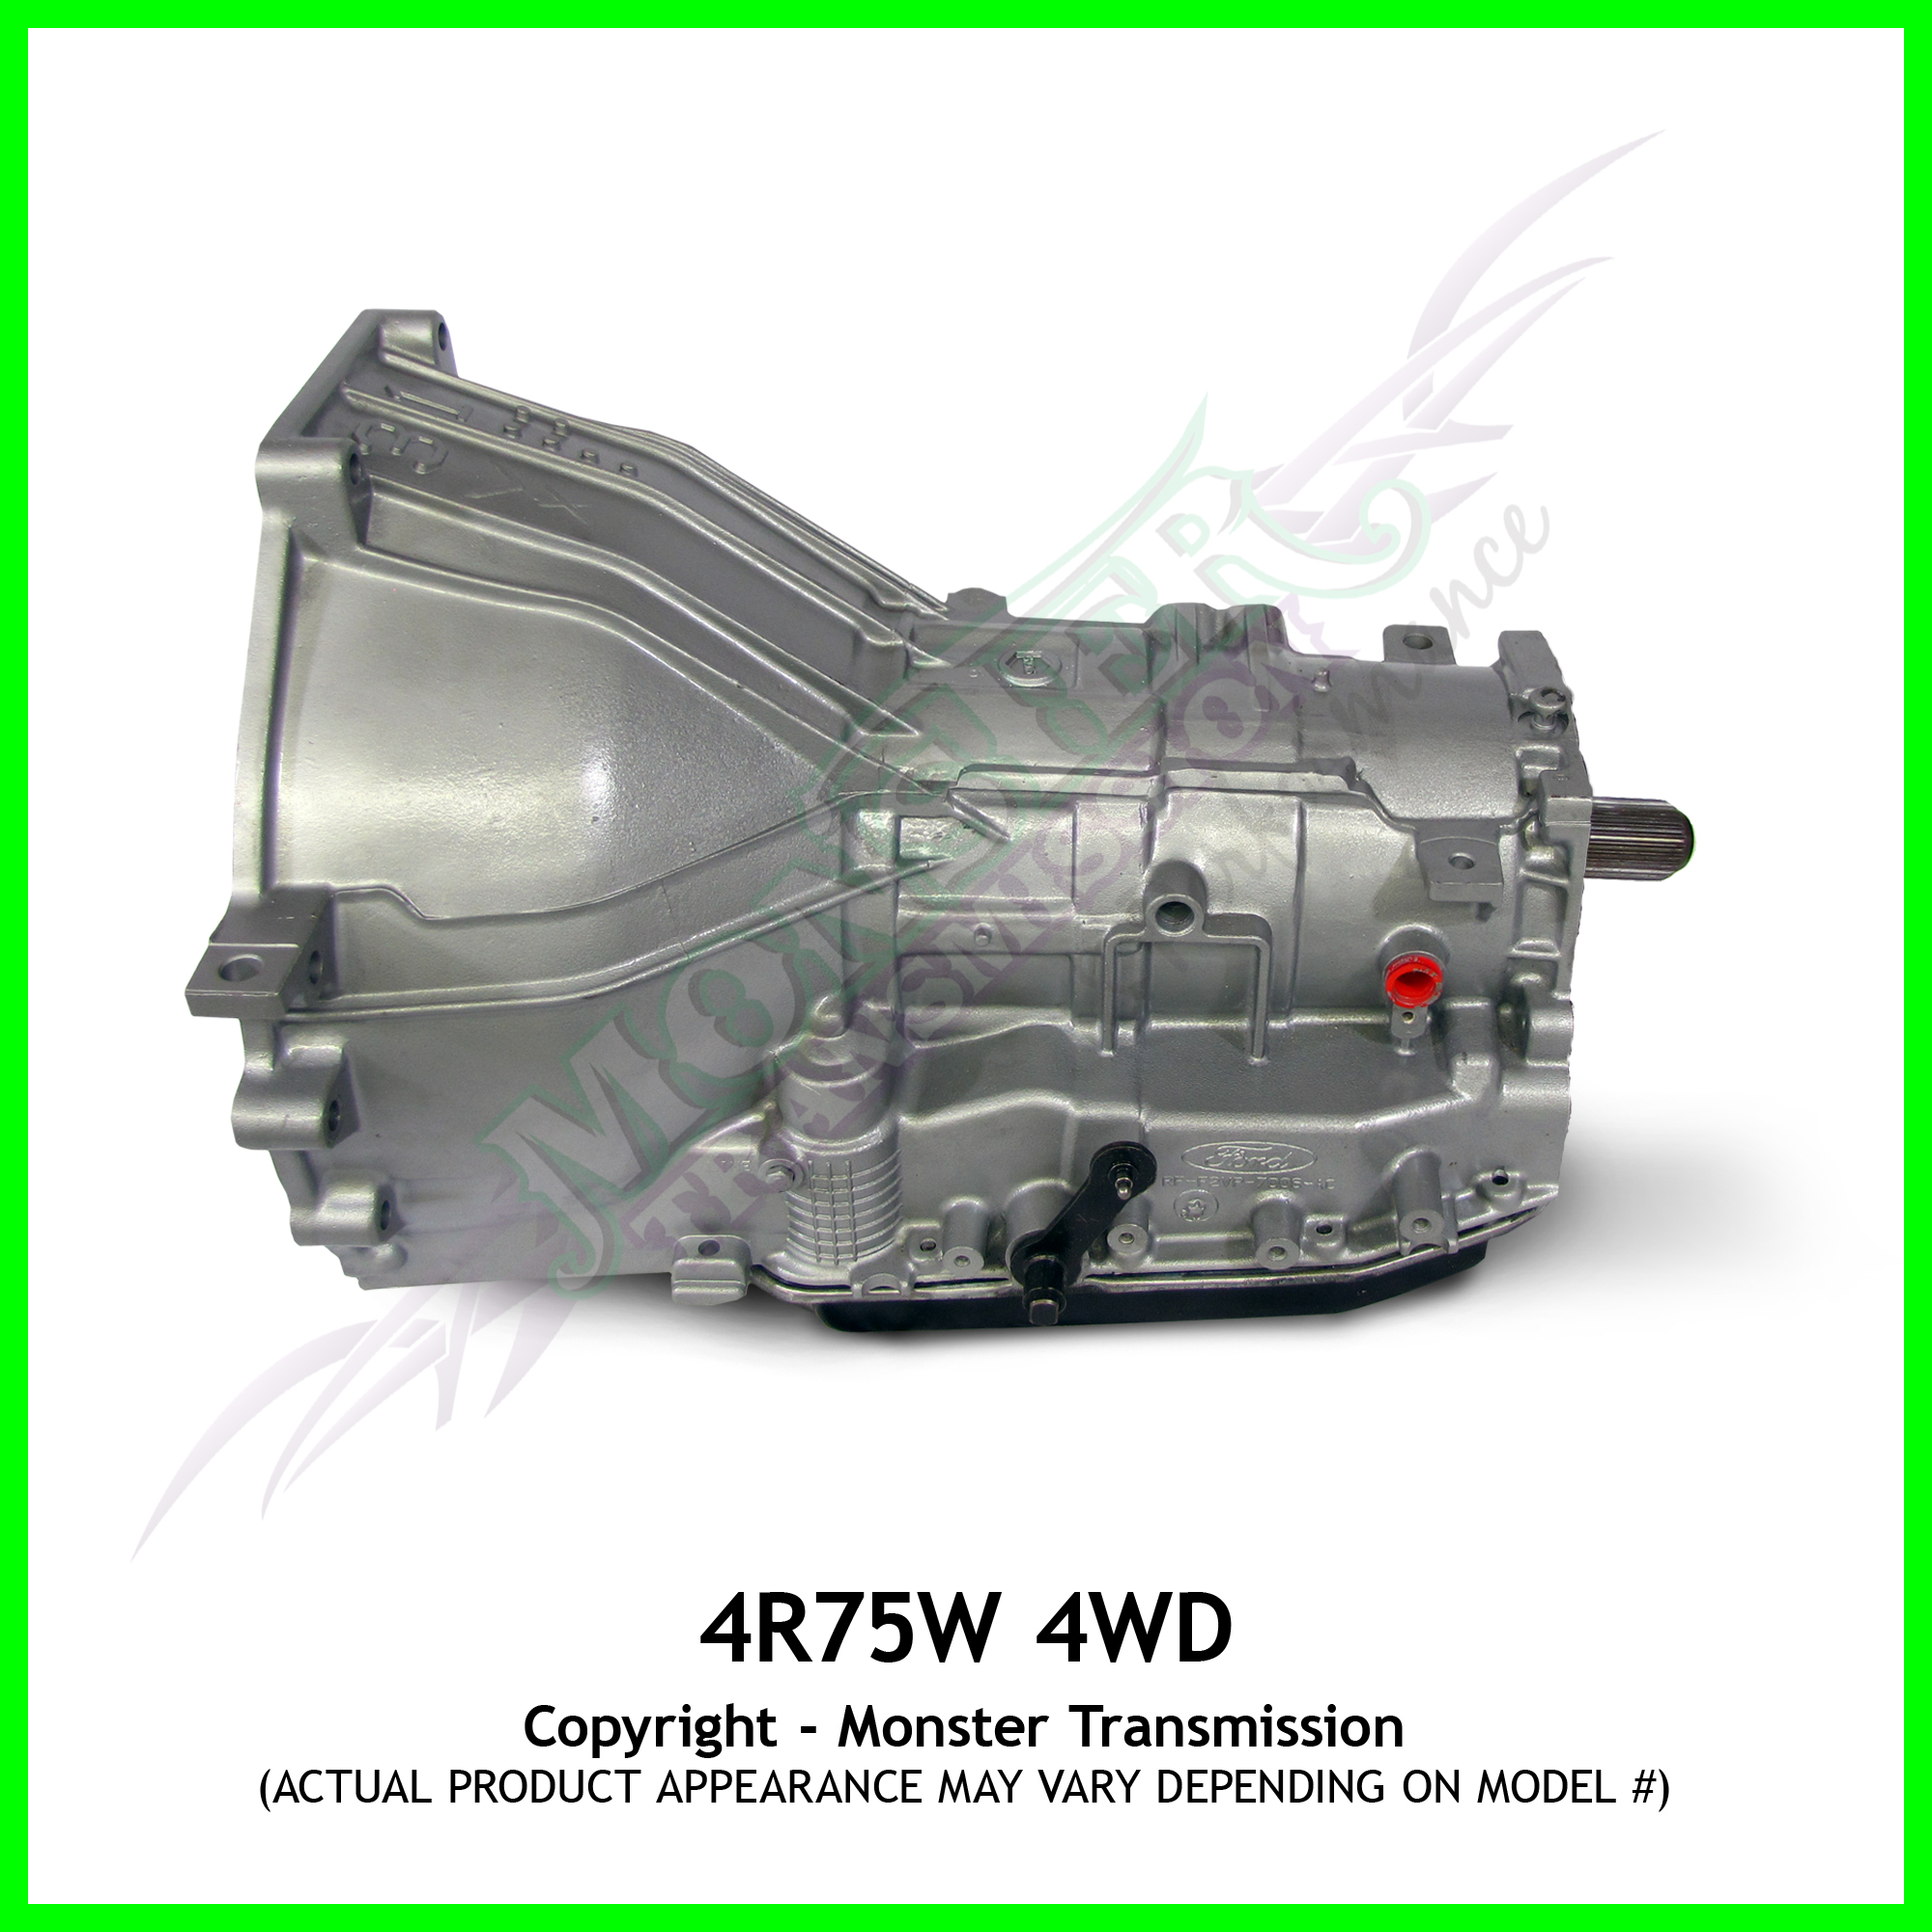 4R75E, 4R75W Transmission, High Performance 4WD, Monster ...